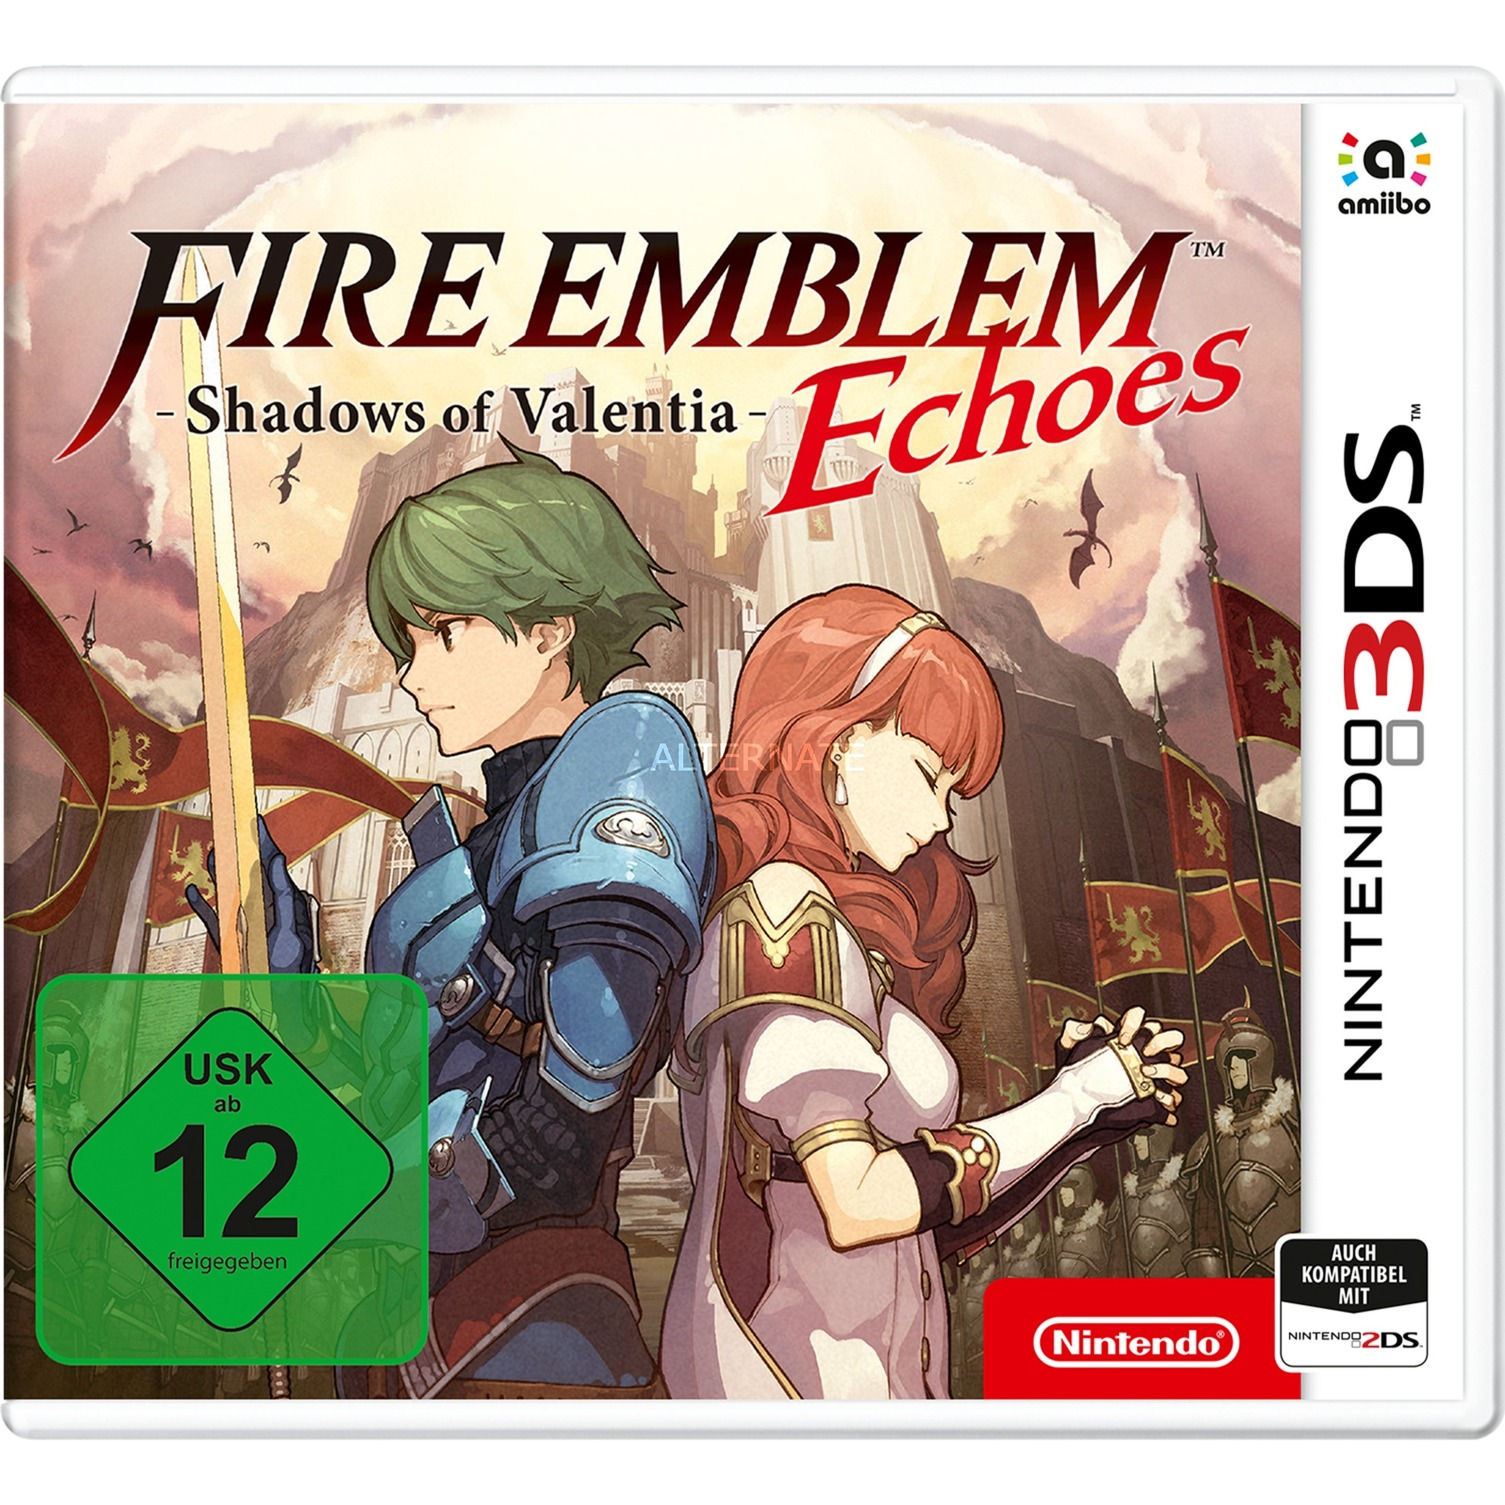 fire-emblem-echoes-shadows-of-valentia-basis-nintendo-3ds-tysk-videospil